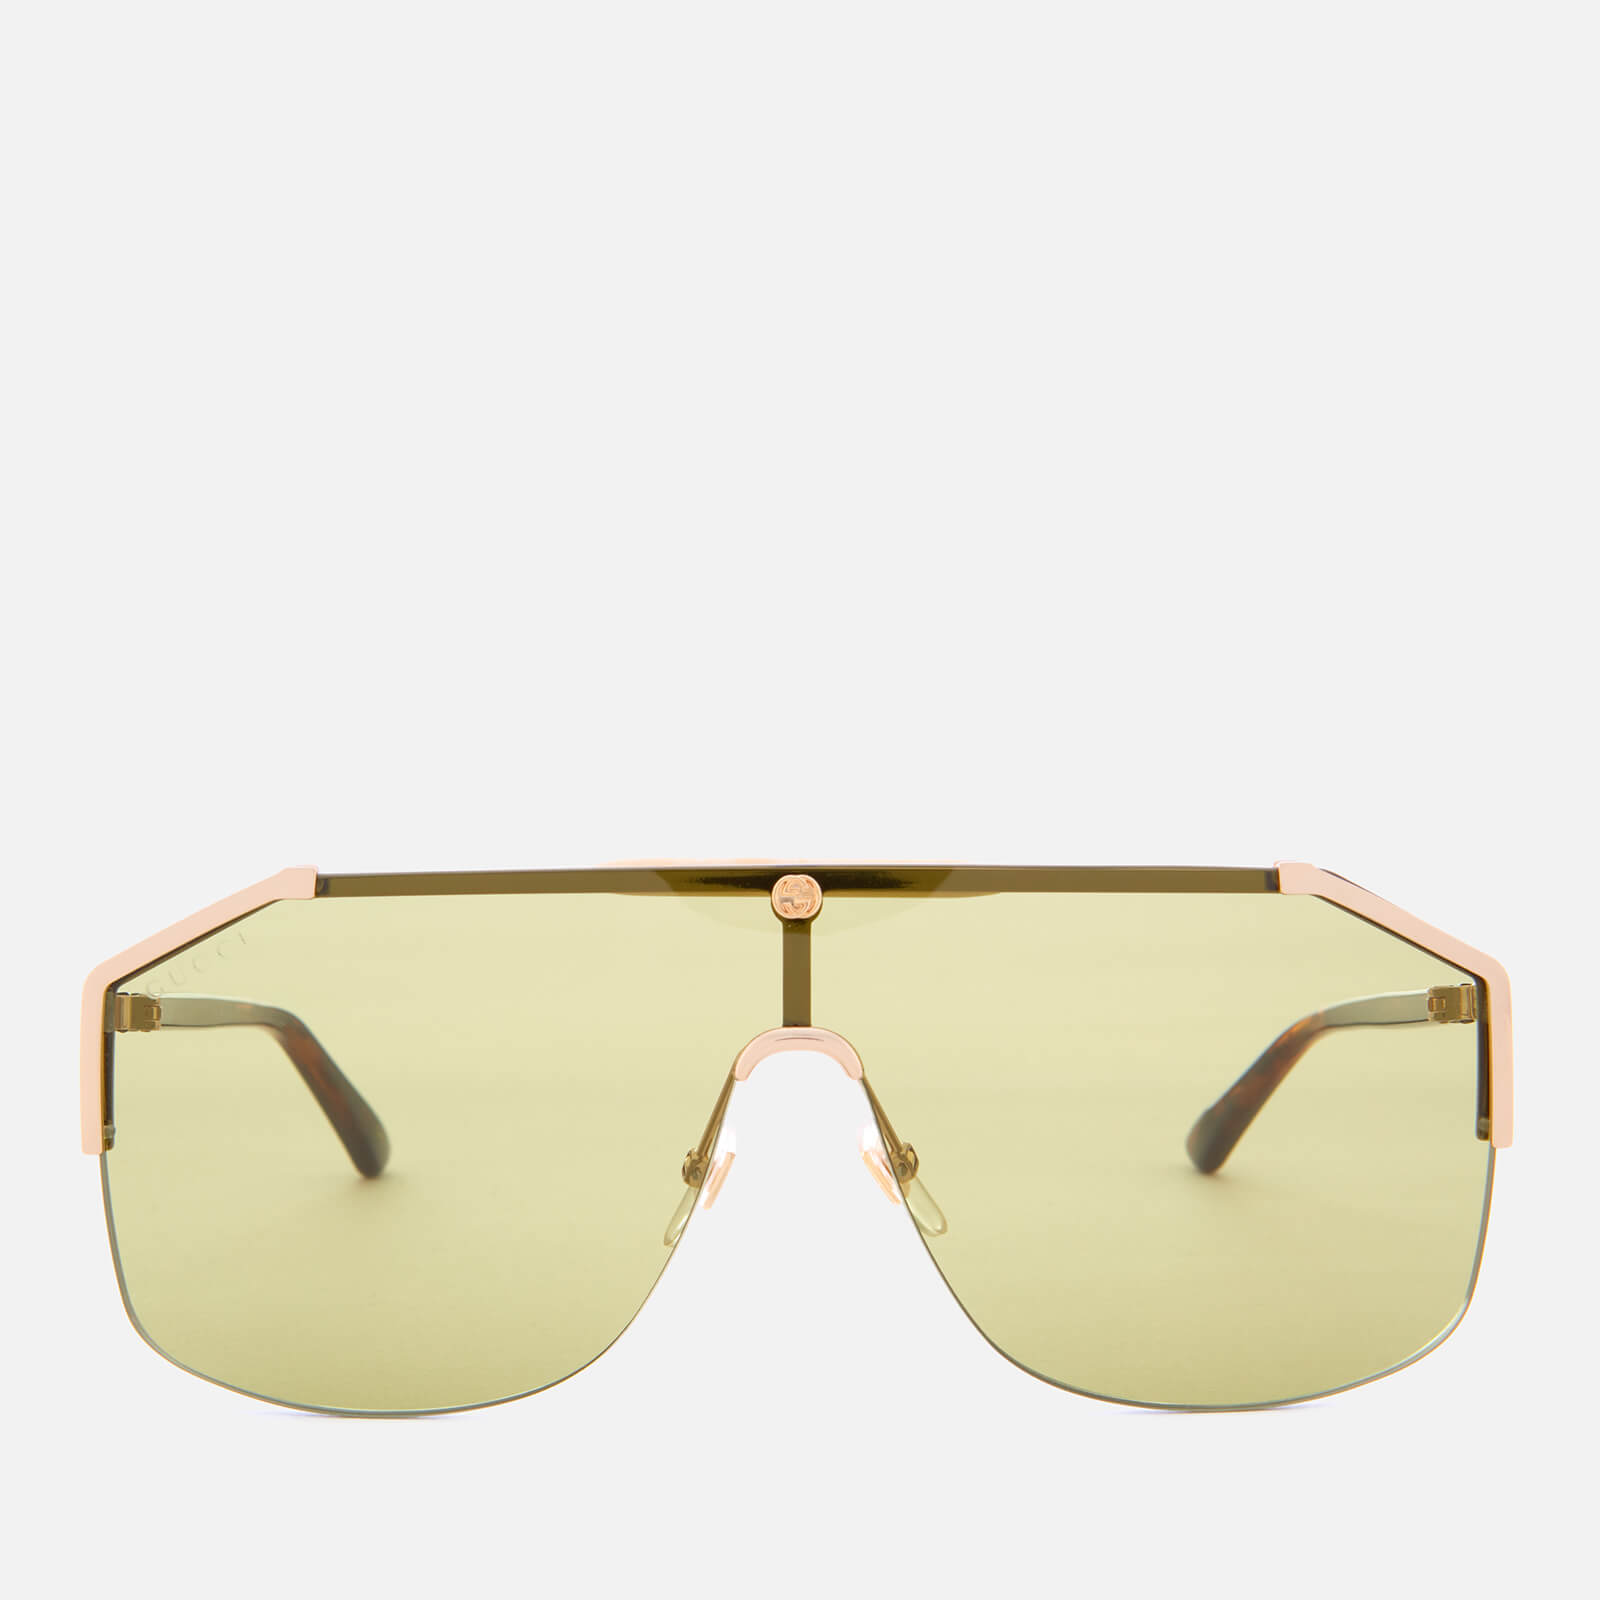 d69eb32cd60 Gucci Men s Metal Angle Sunglasses - Gold Havana - Free UK Delivery over £50